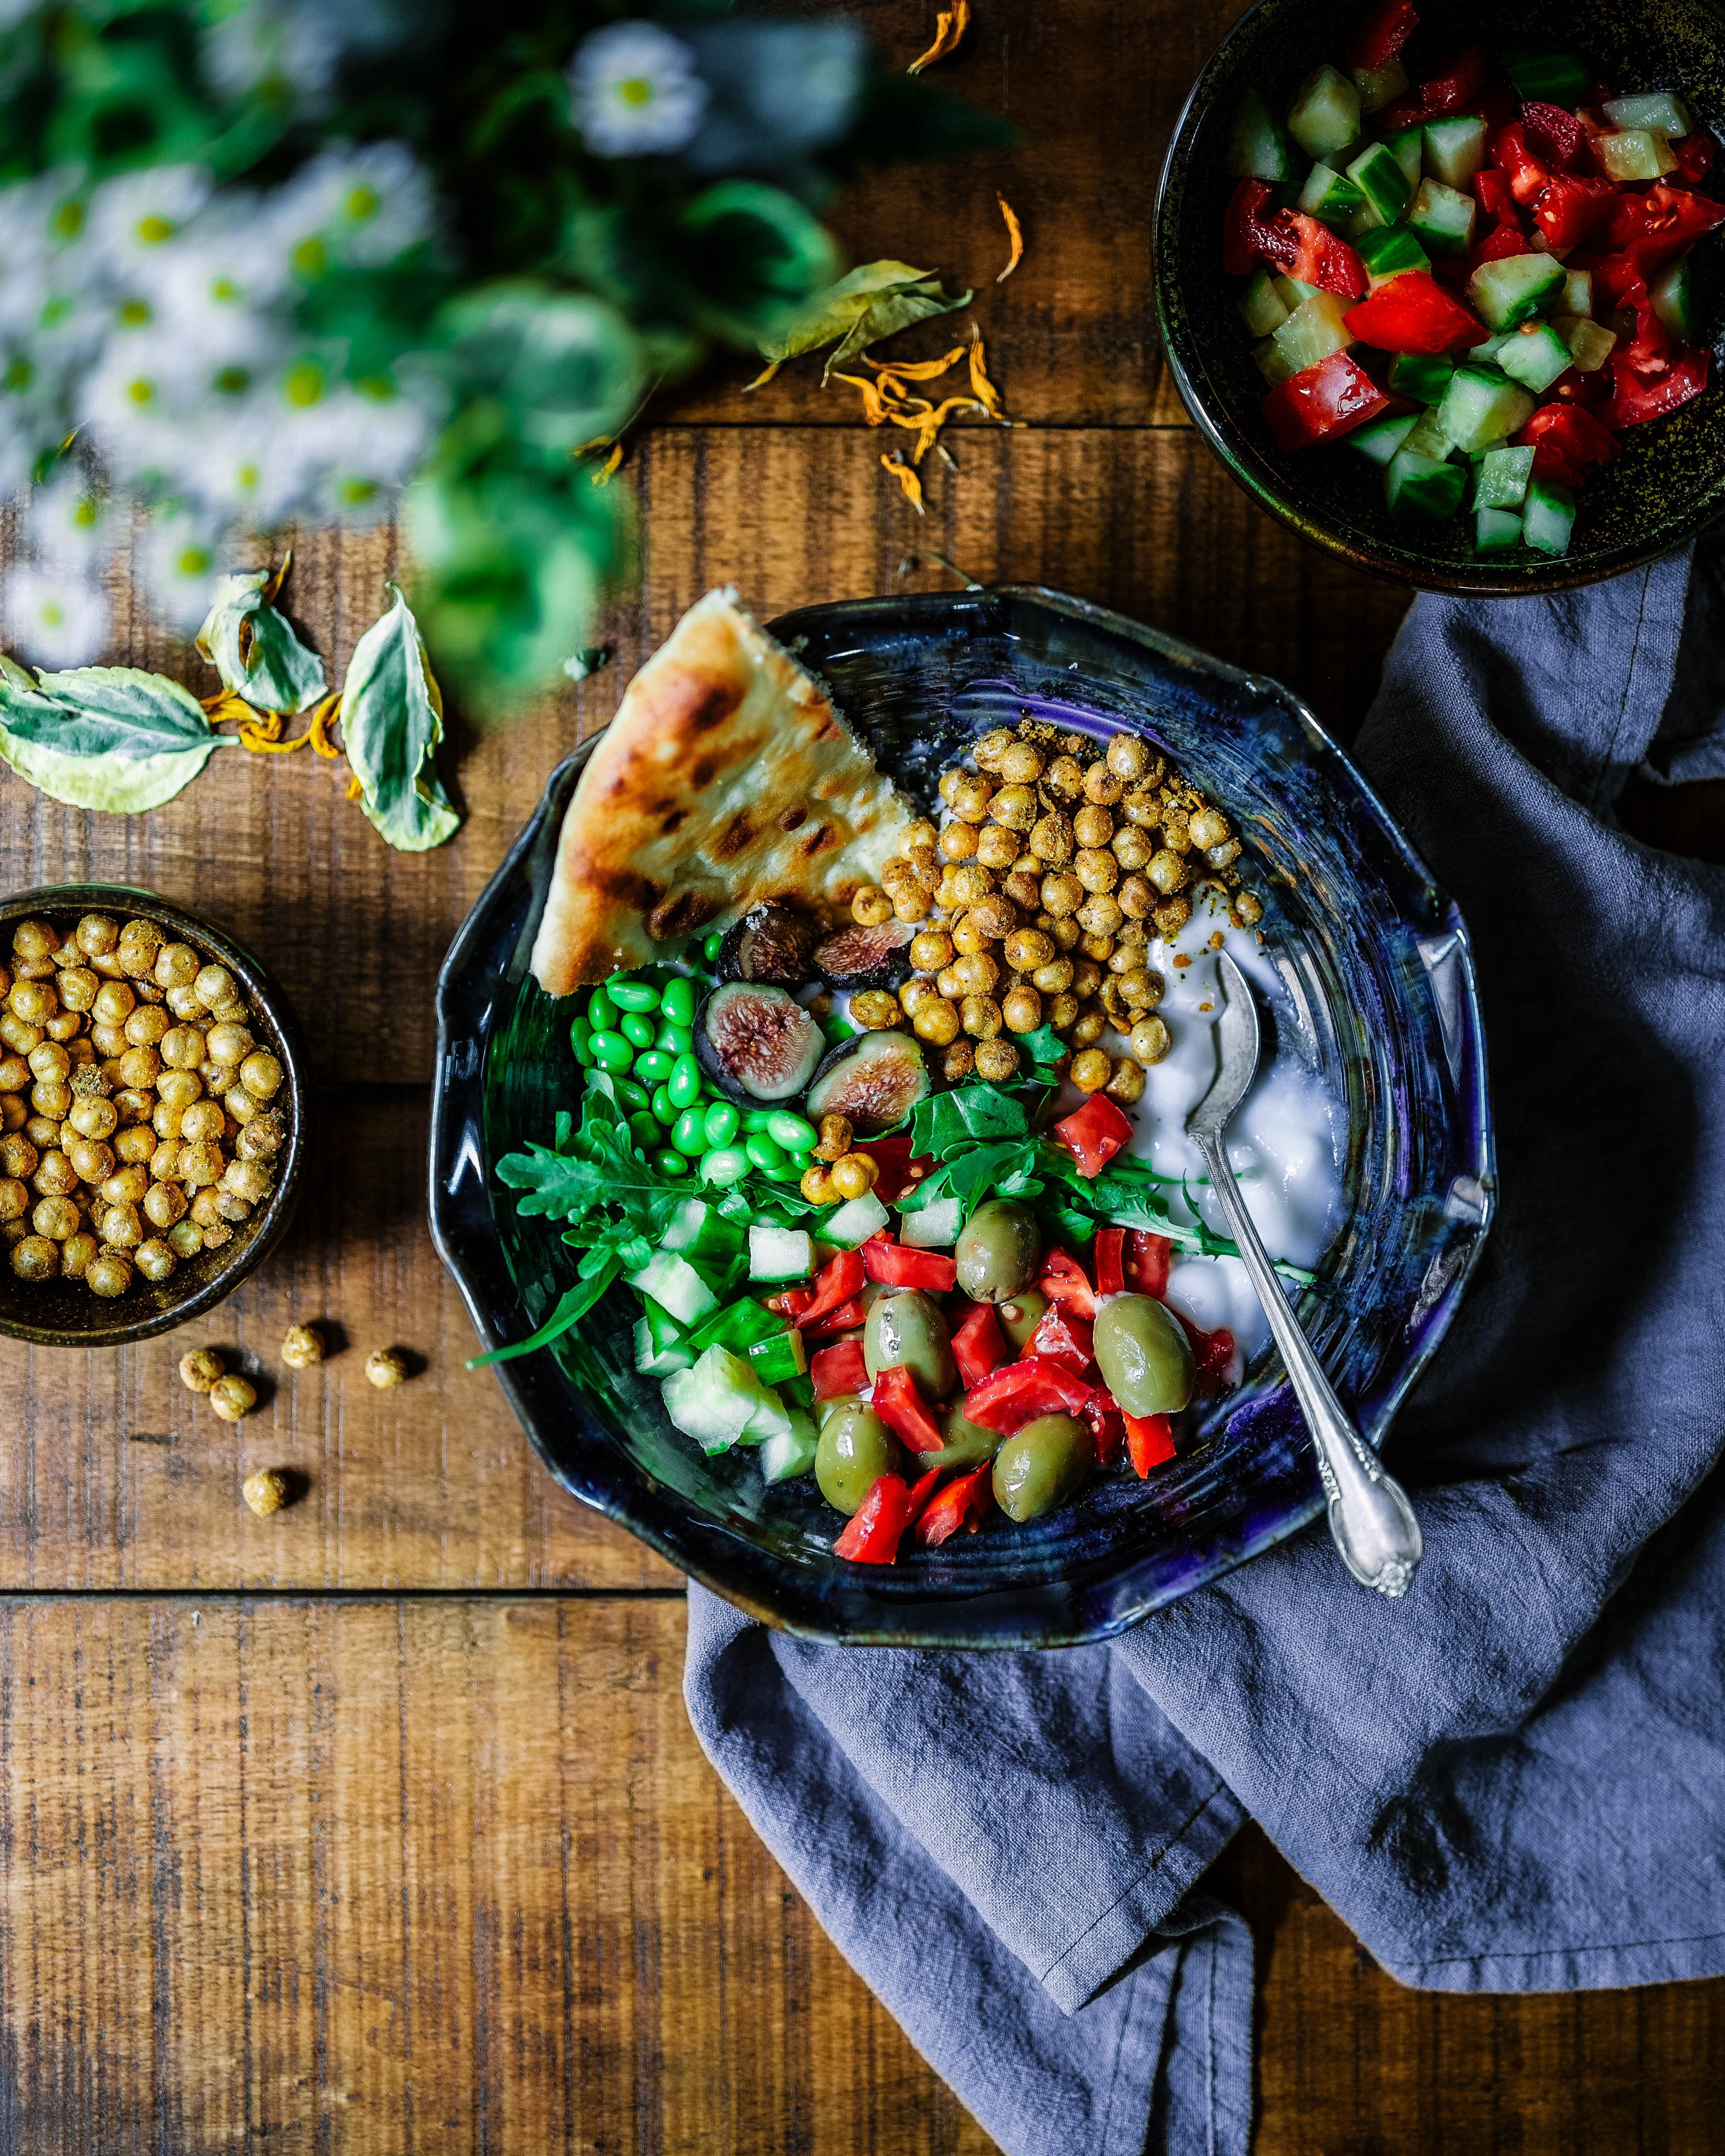 platter of vegetables and chickpeas with flatbread